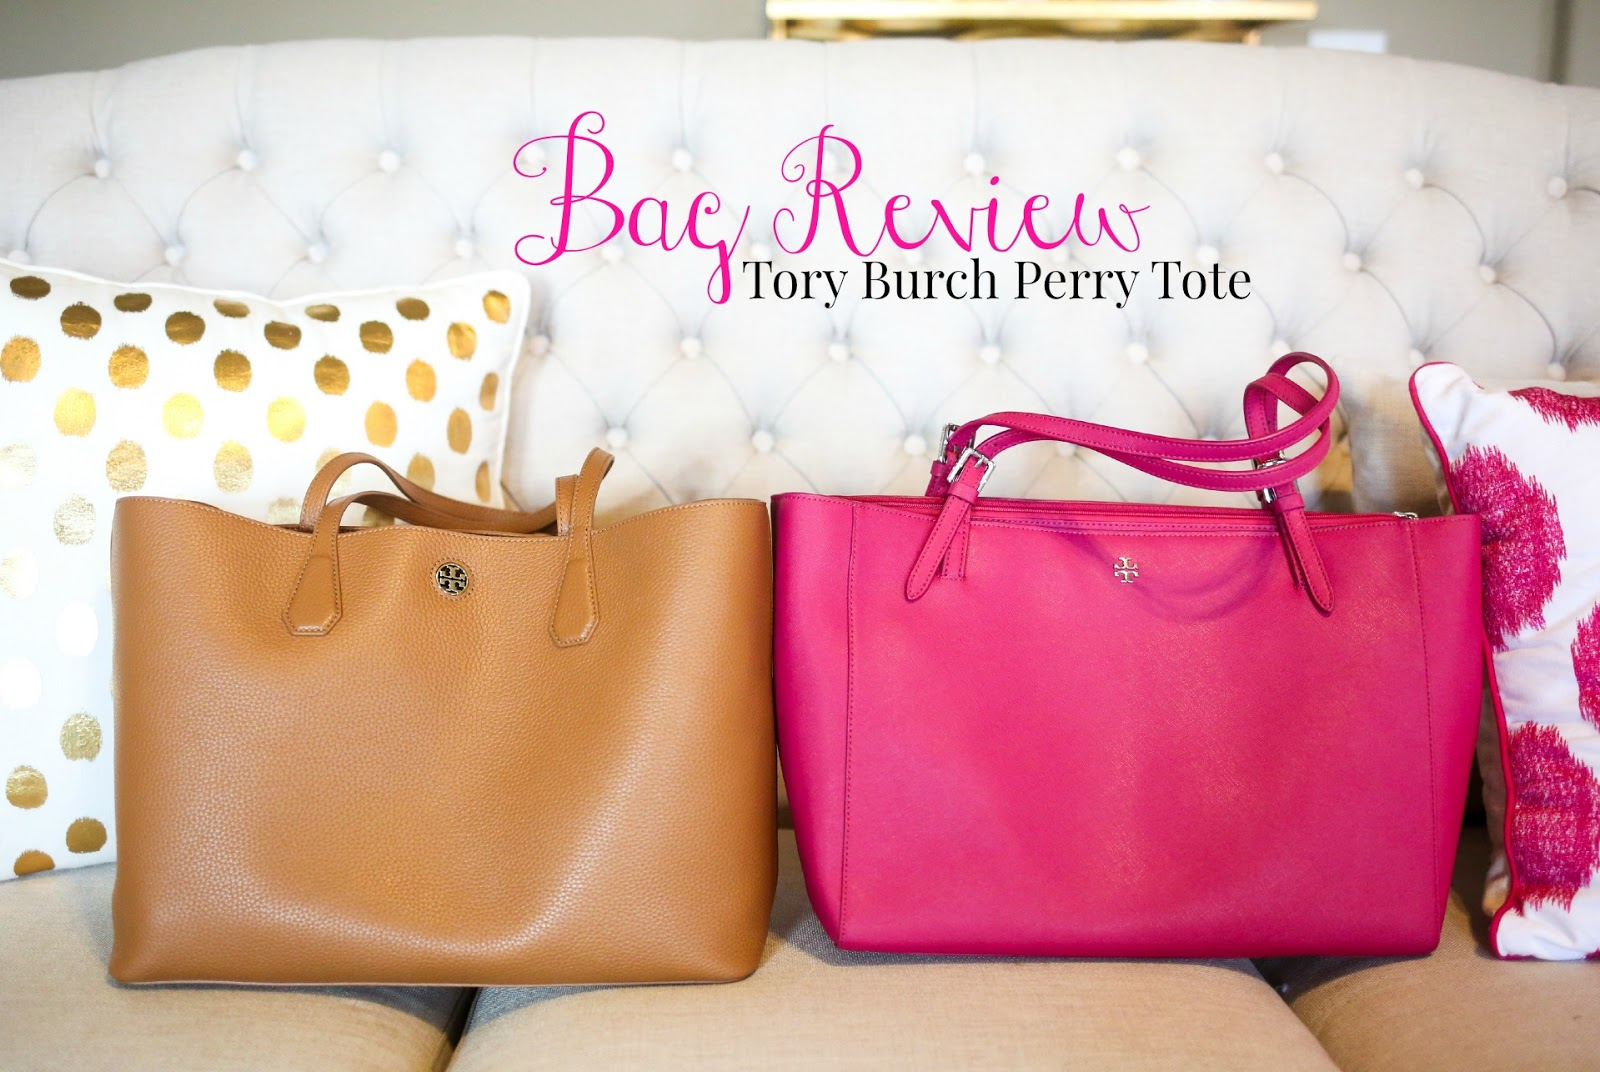 d7259bb6beab Tory Burch Bag Review